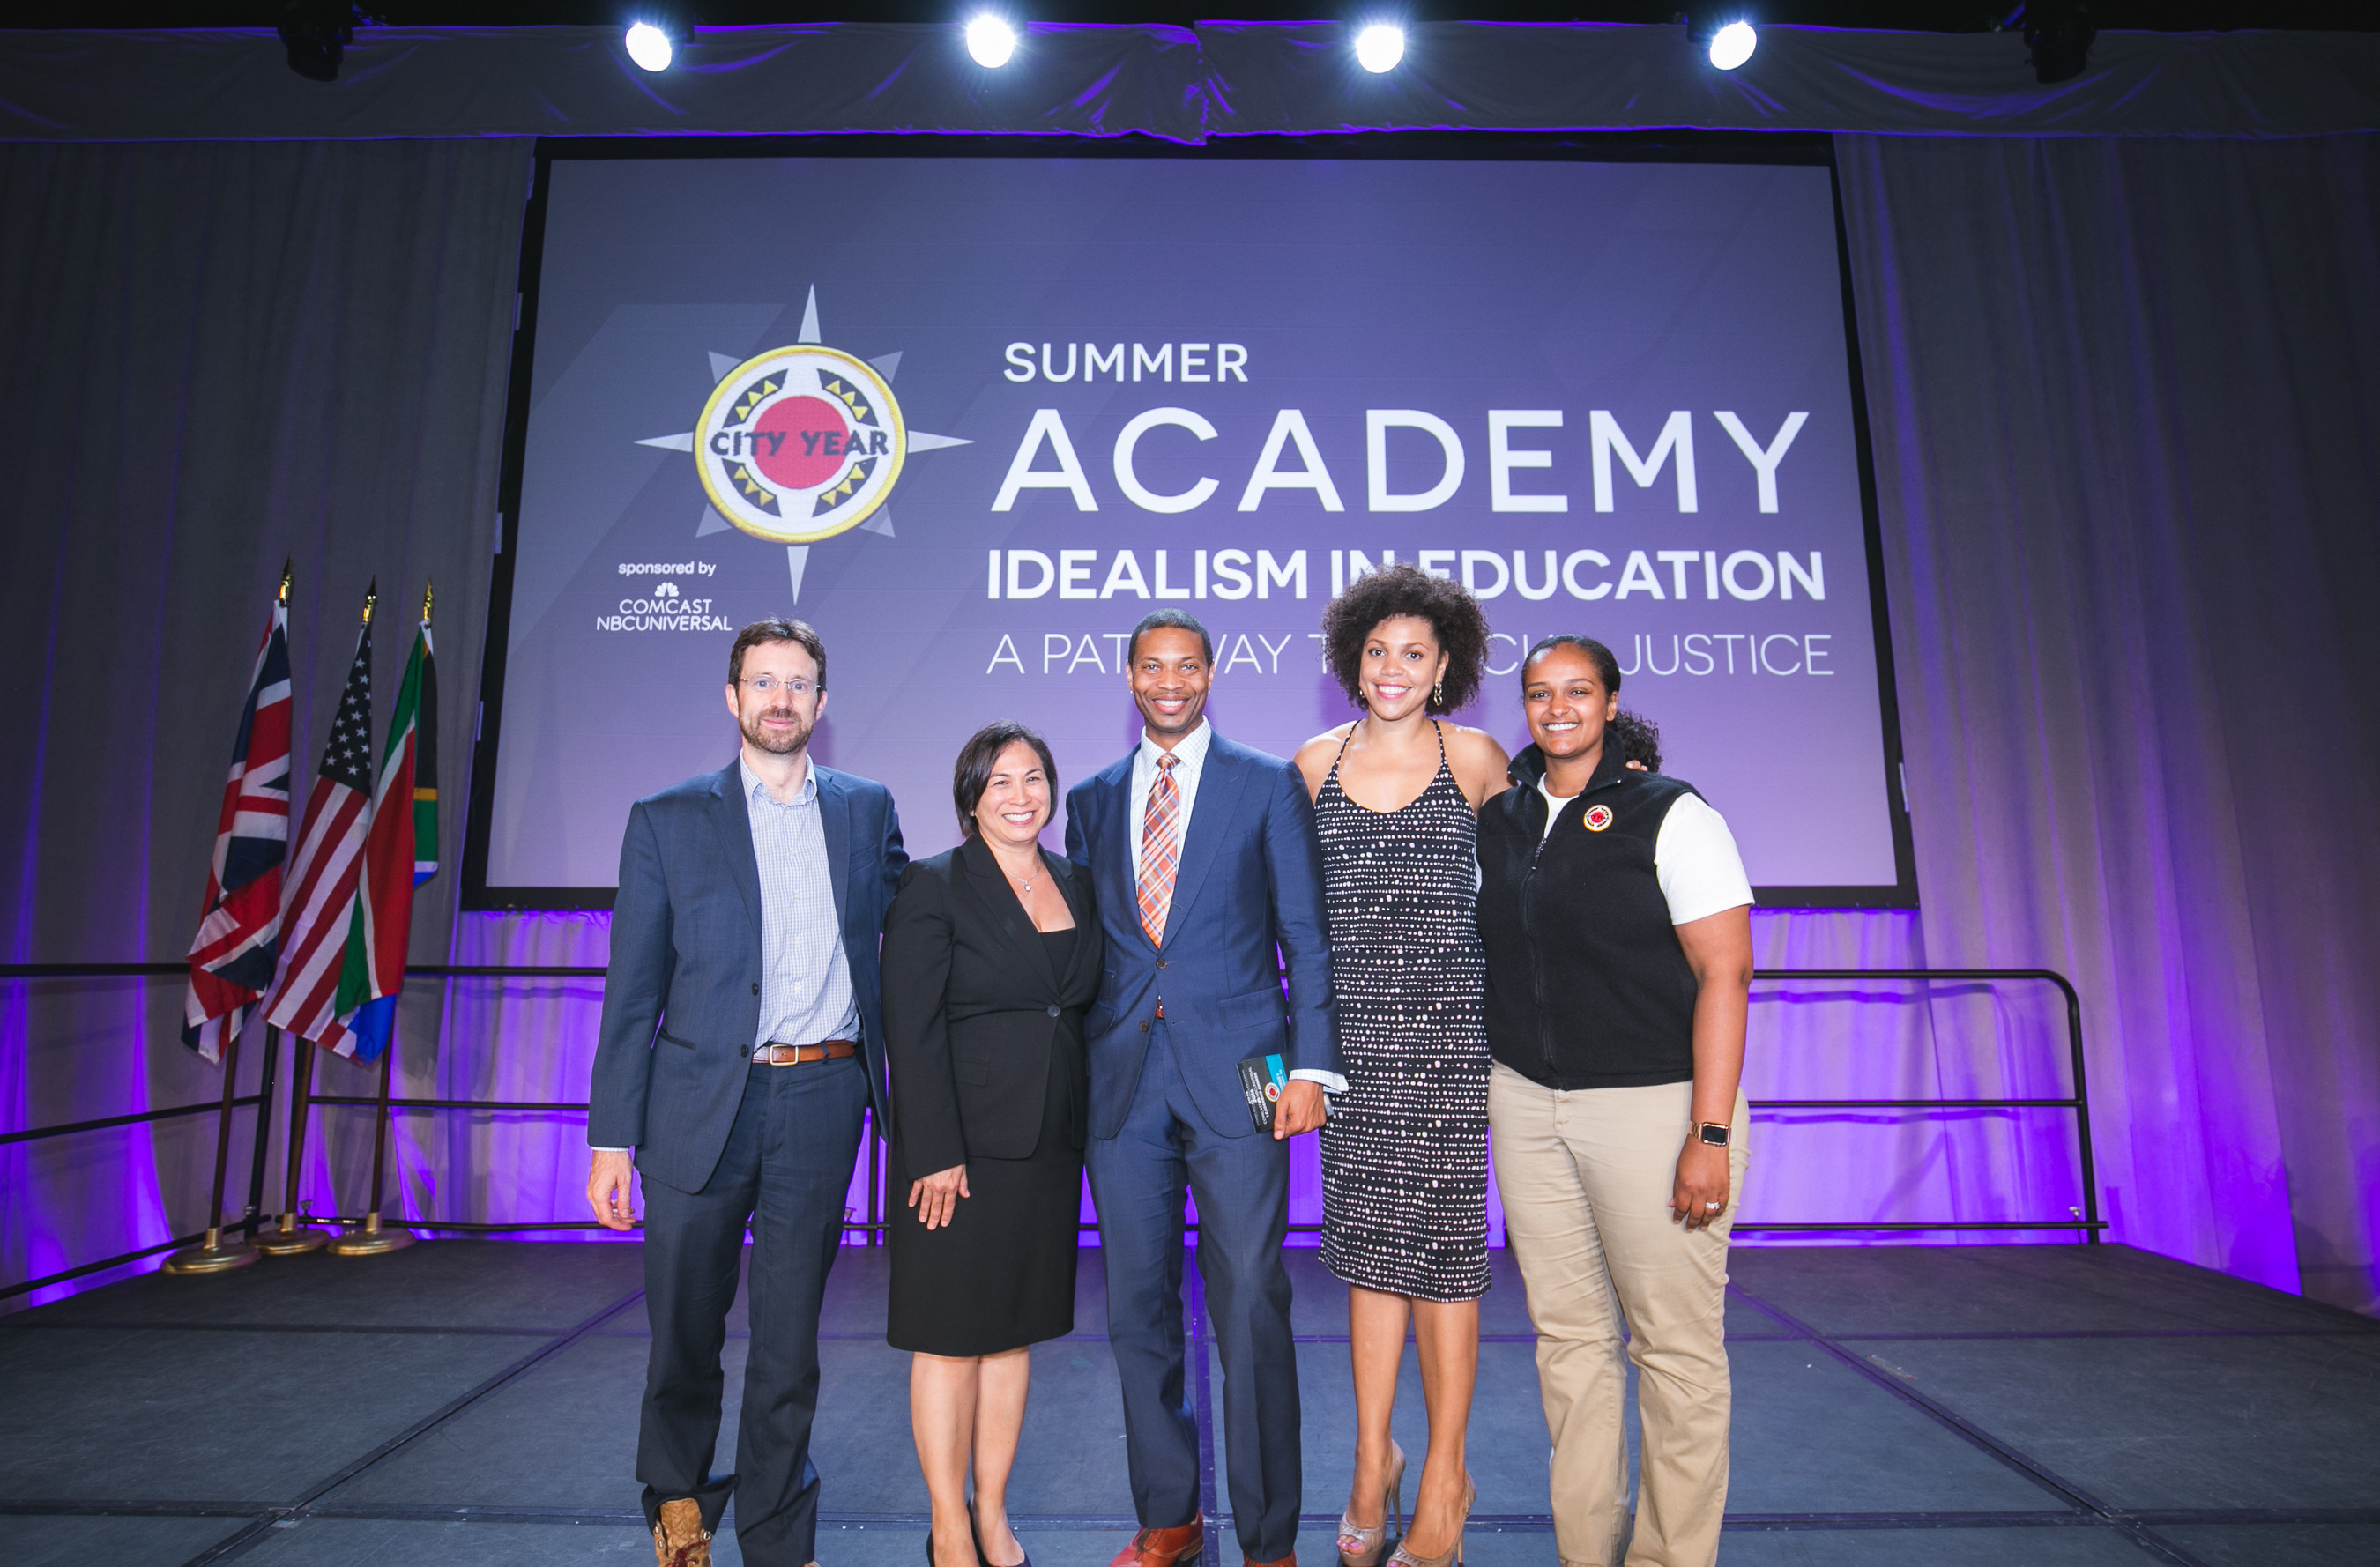 Comcast NBCUniversal recognizes five outstanding City Year alumni leaders at an award ceremony held in Boston on Wednesday, July 13, 2016.  Award recipients are (left to right):  Chris Osgood, Gina Massuda Barnett, Rahn Dorsey, Jade Elias and Bethiel Girma Holten.